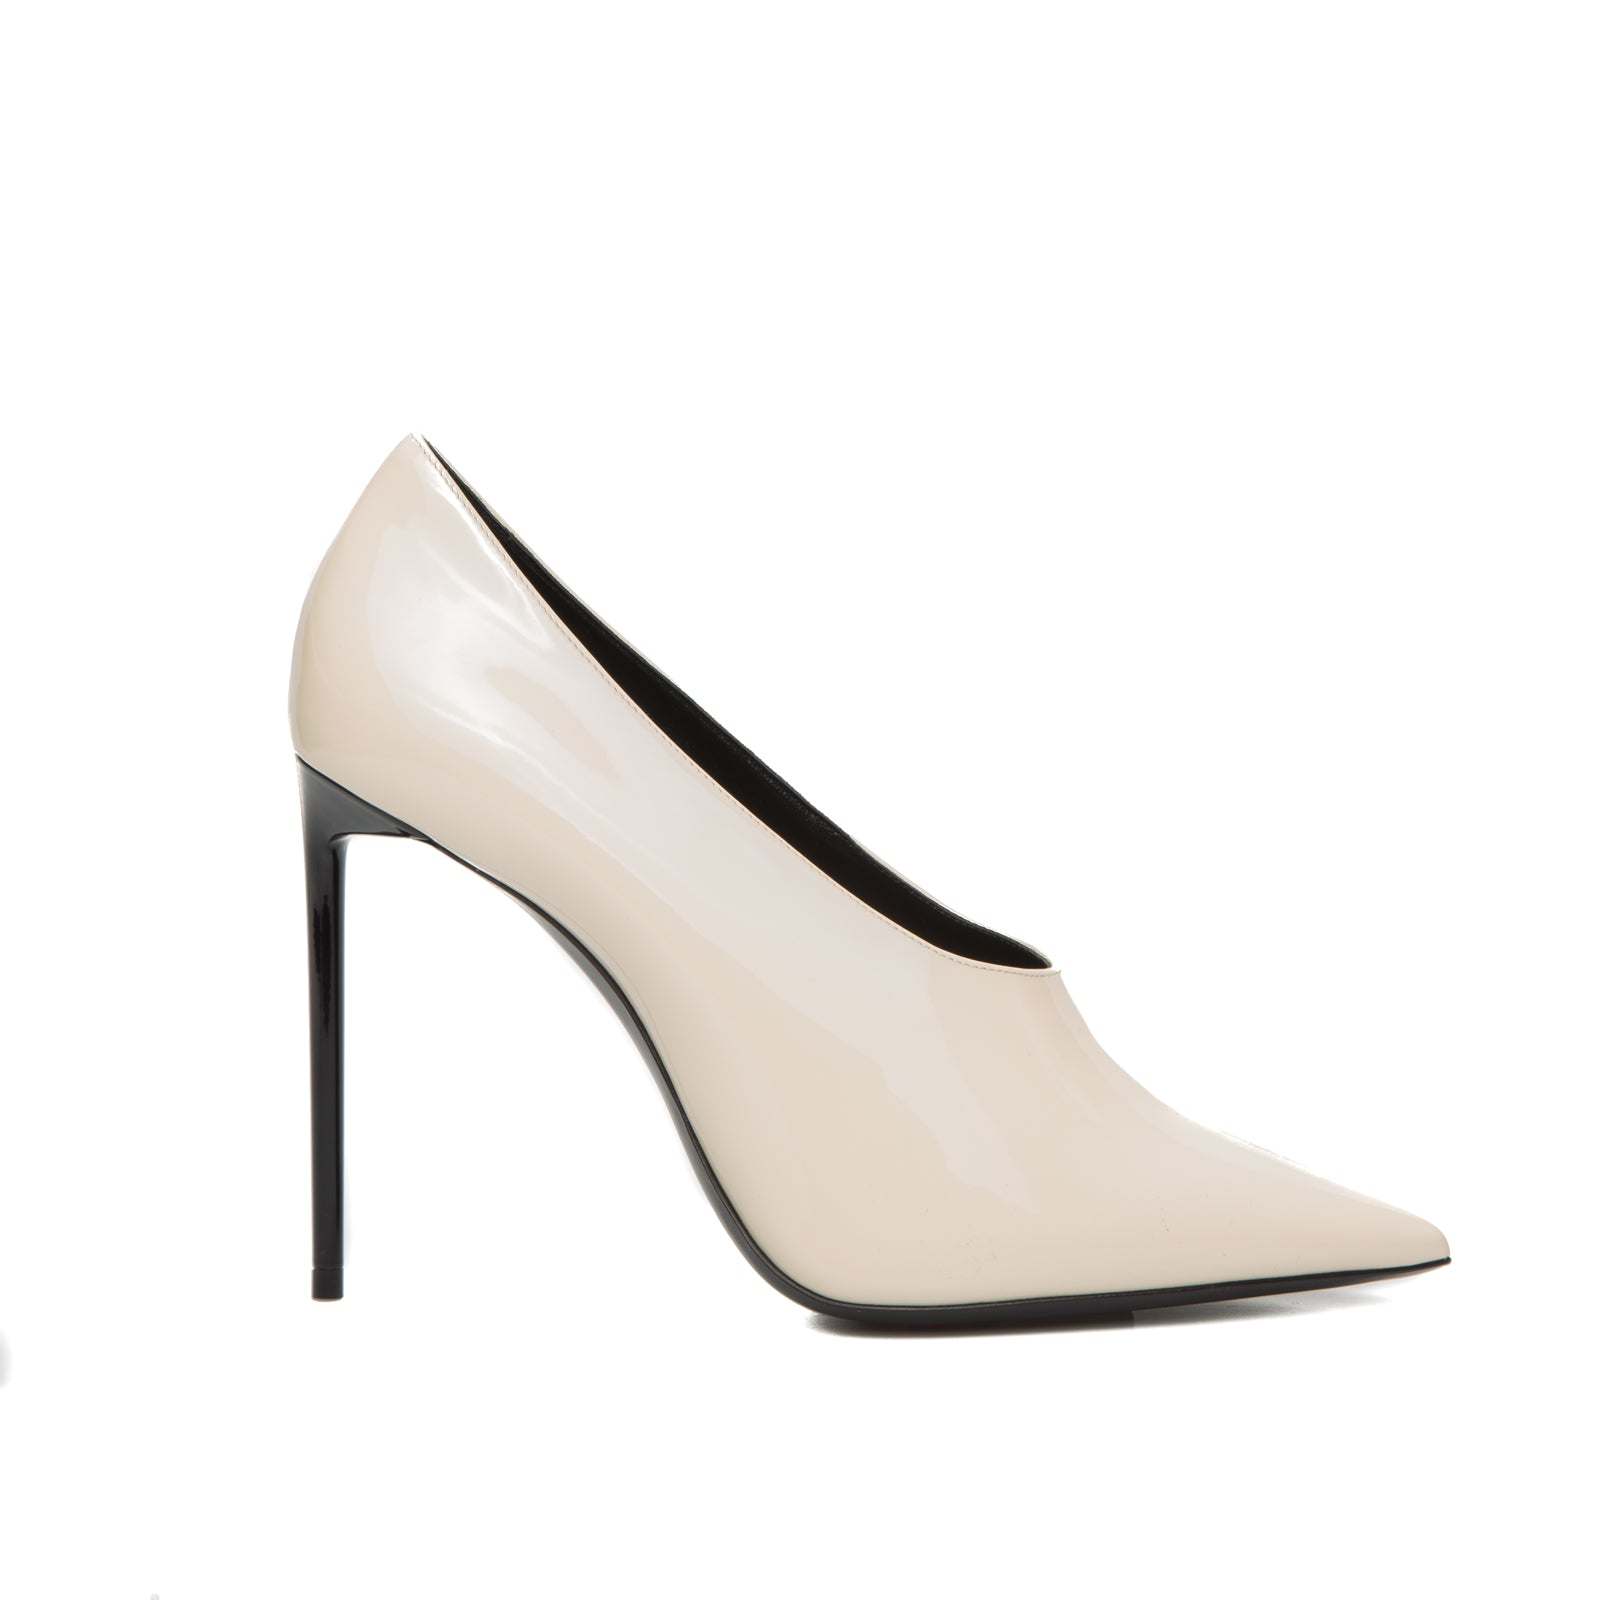 Patent Leather Teddy Pumps-YVES SAINT LAURENT-SHOPATVOI.COM - Luxury Fashion Designer